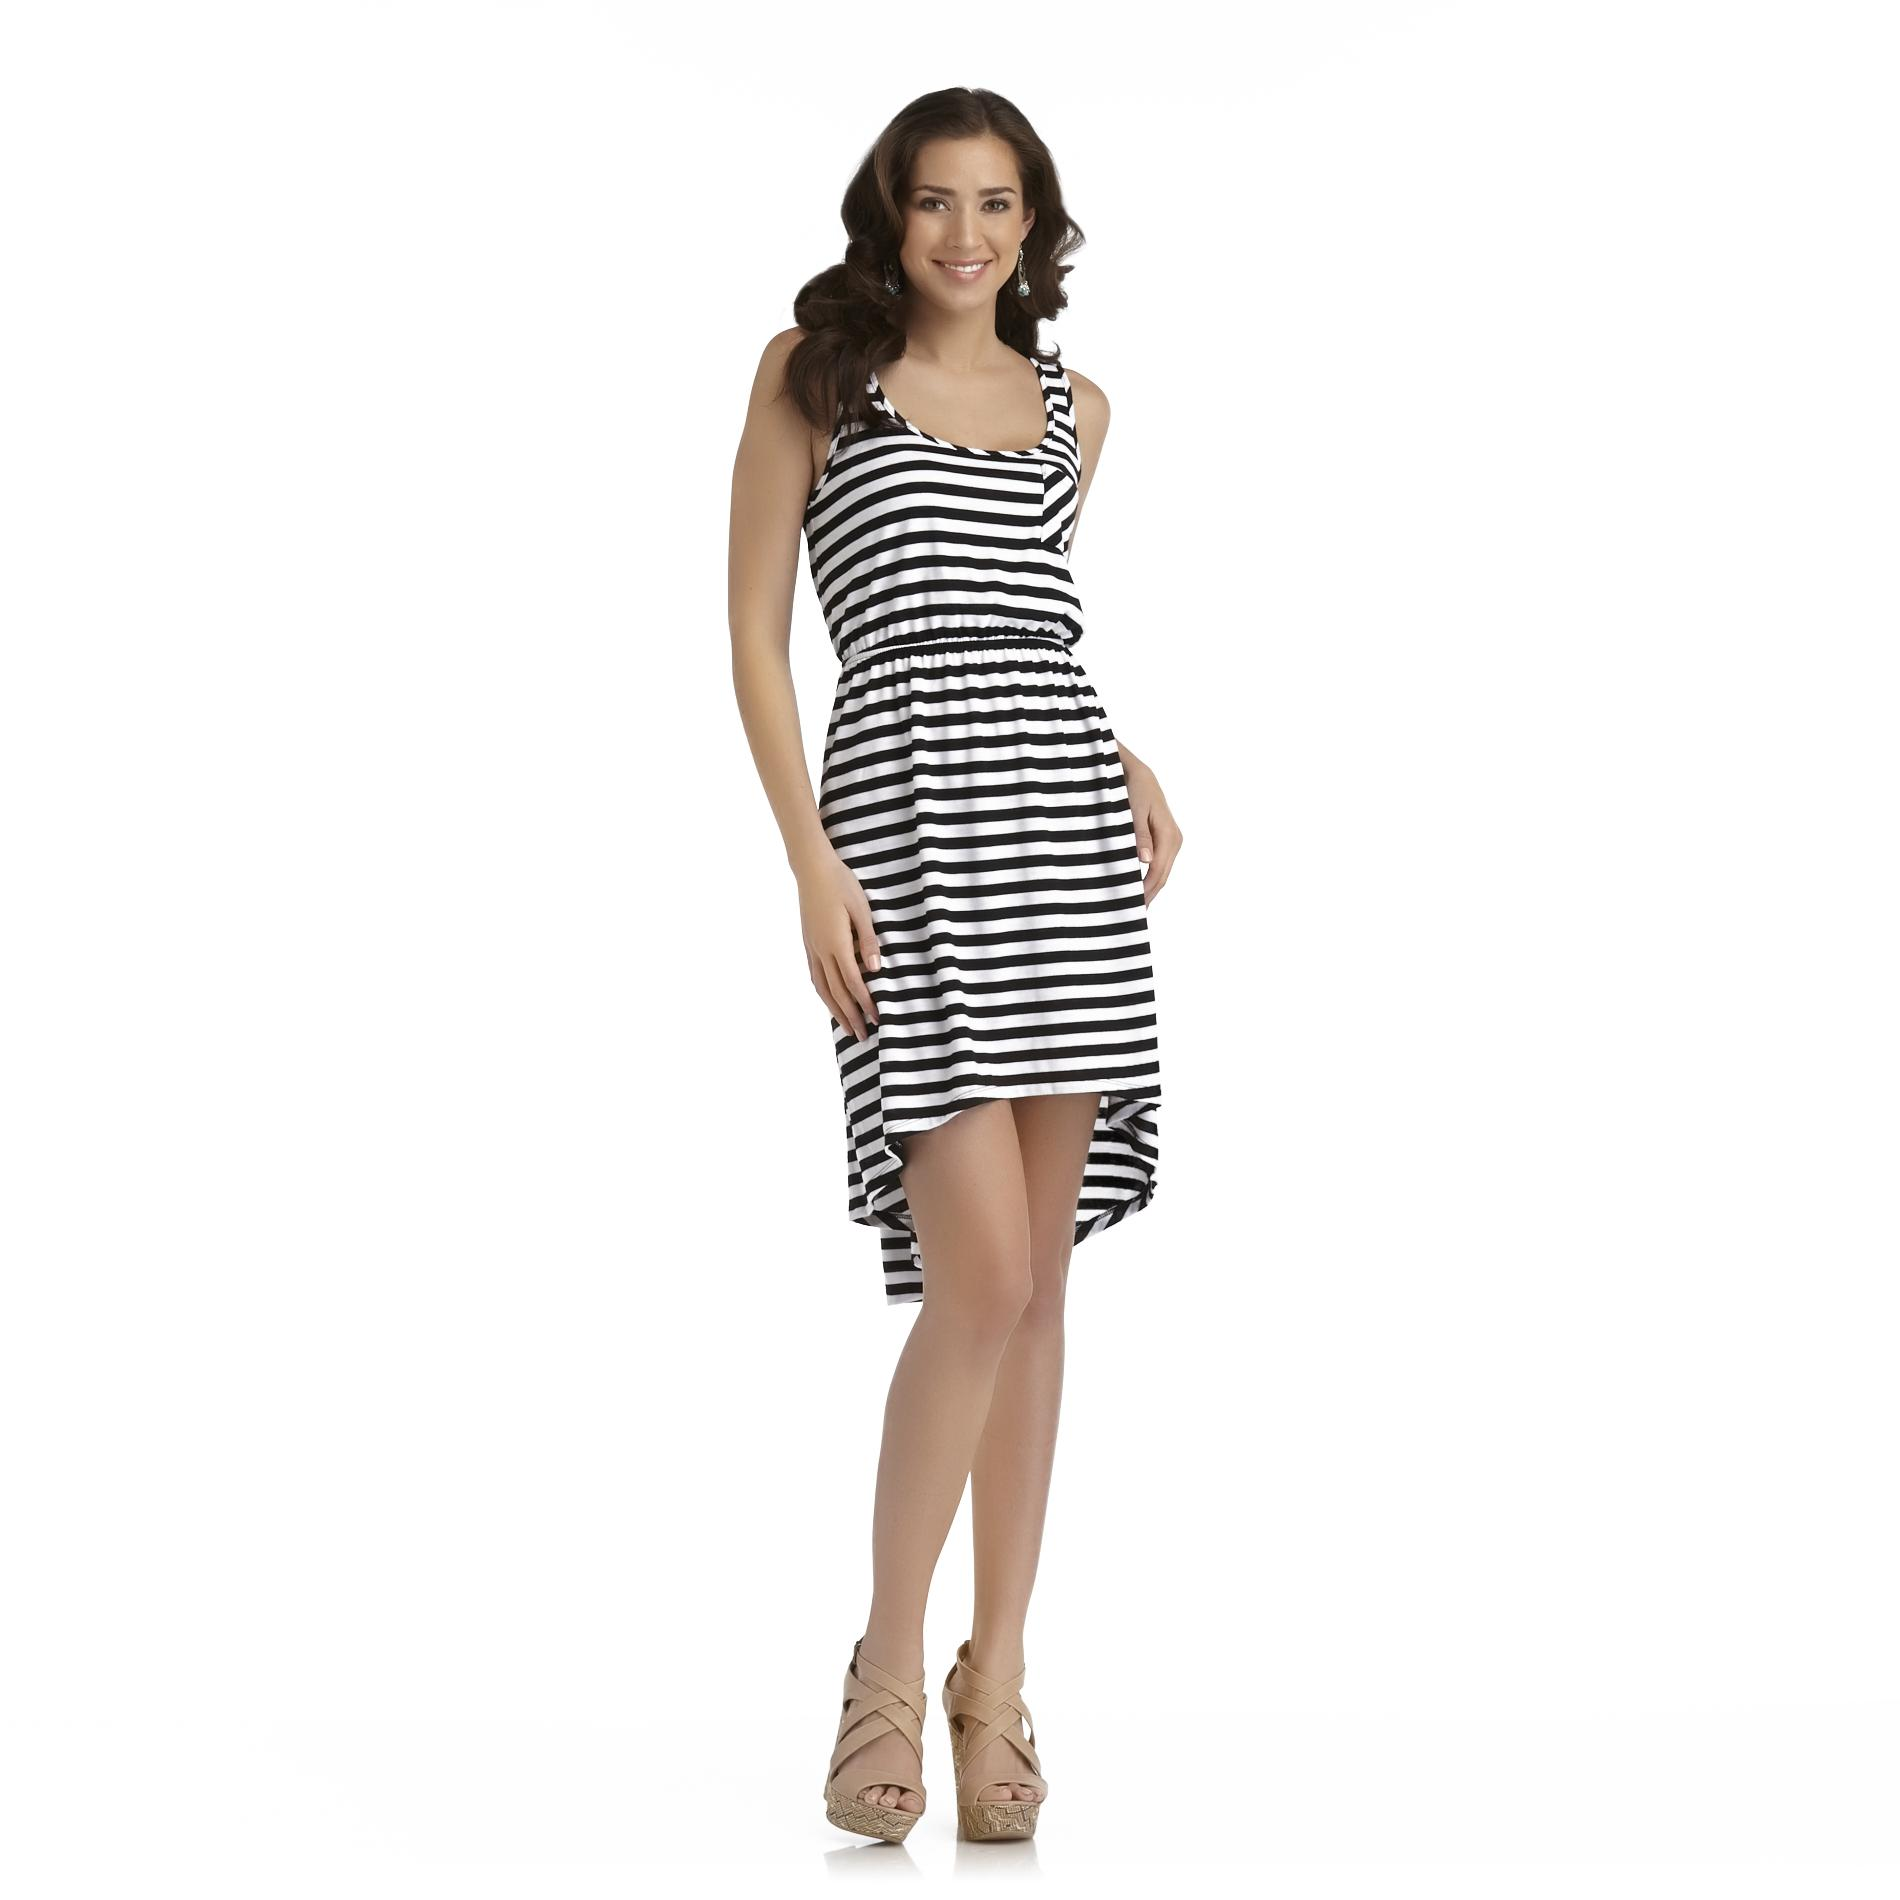 Joe by Joe Boxer Women's High-Low Tank Dress - Striped at Sears.com